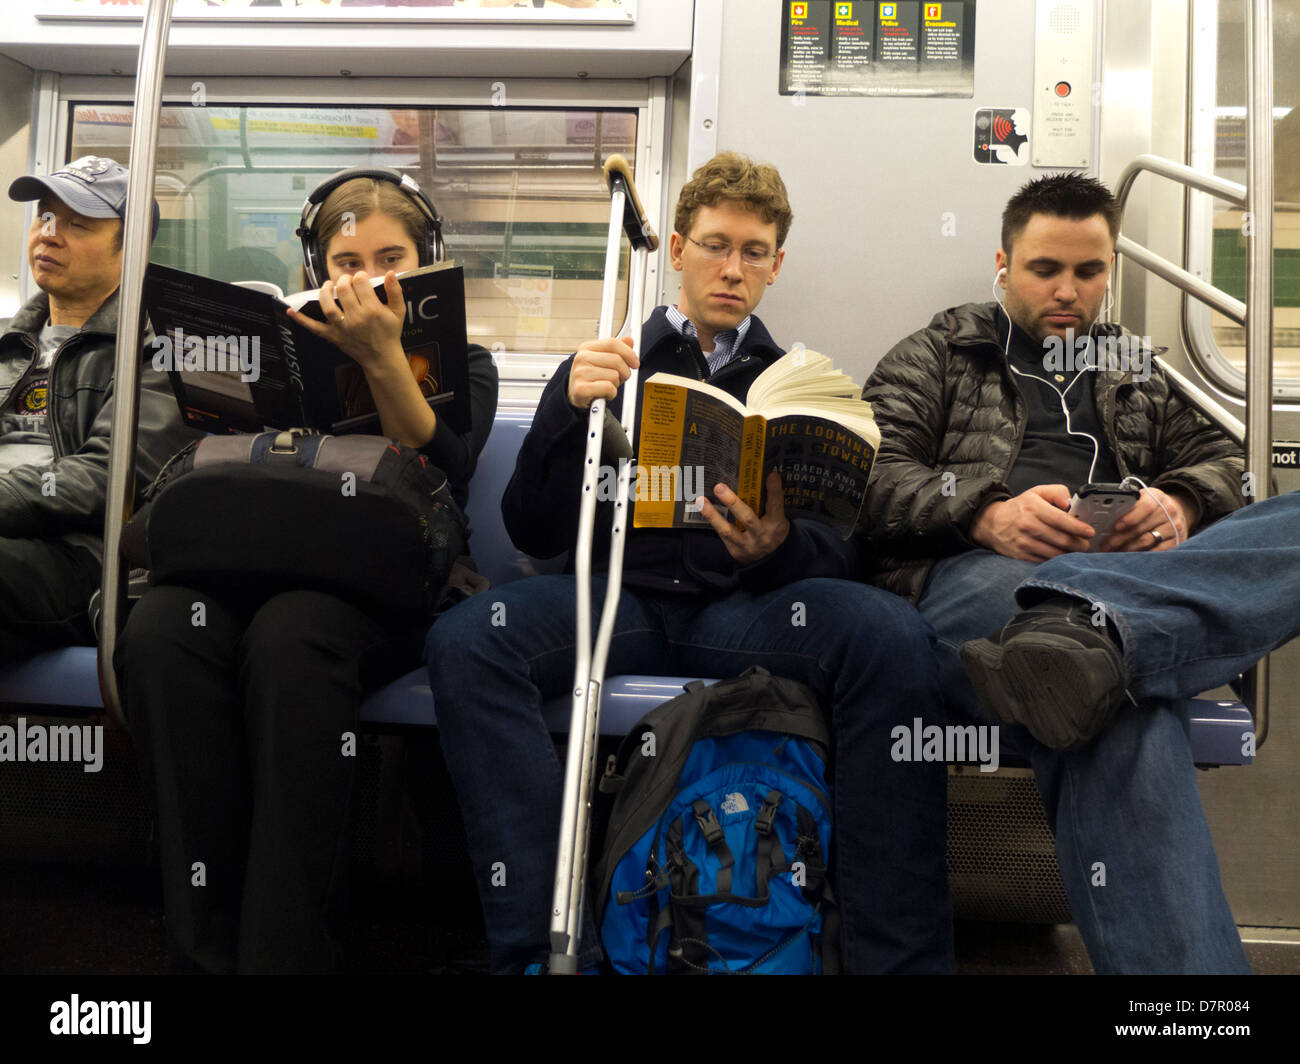 people reading on the subway - Stock Image